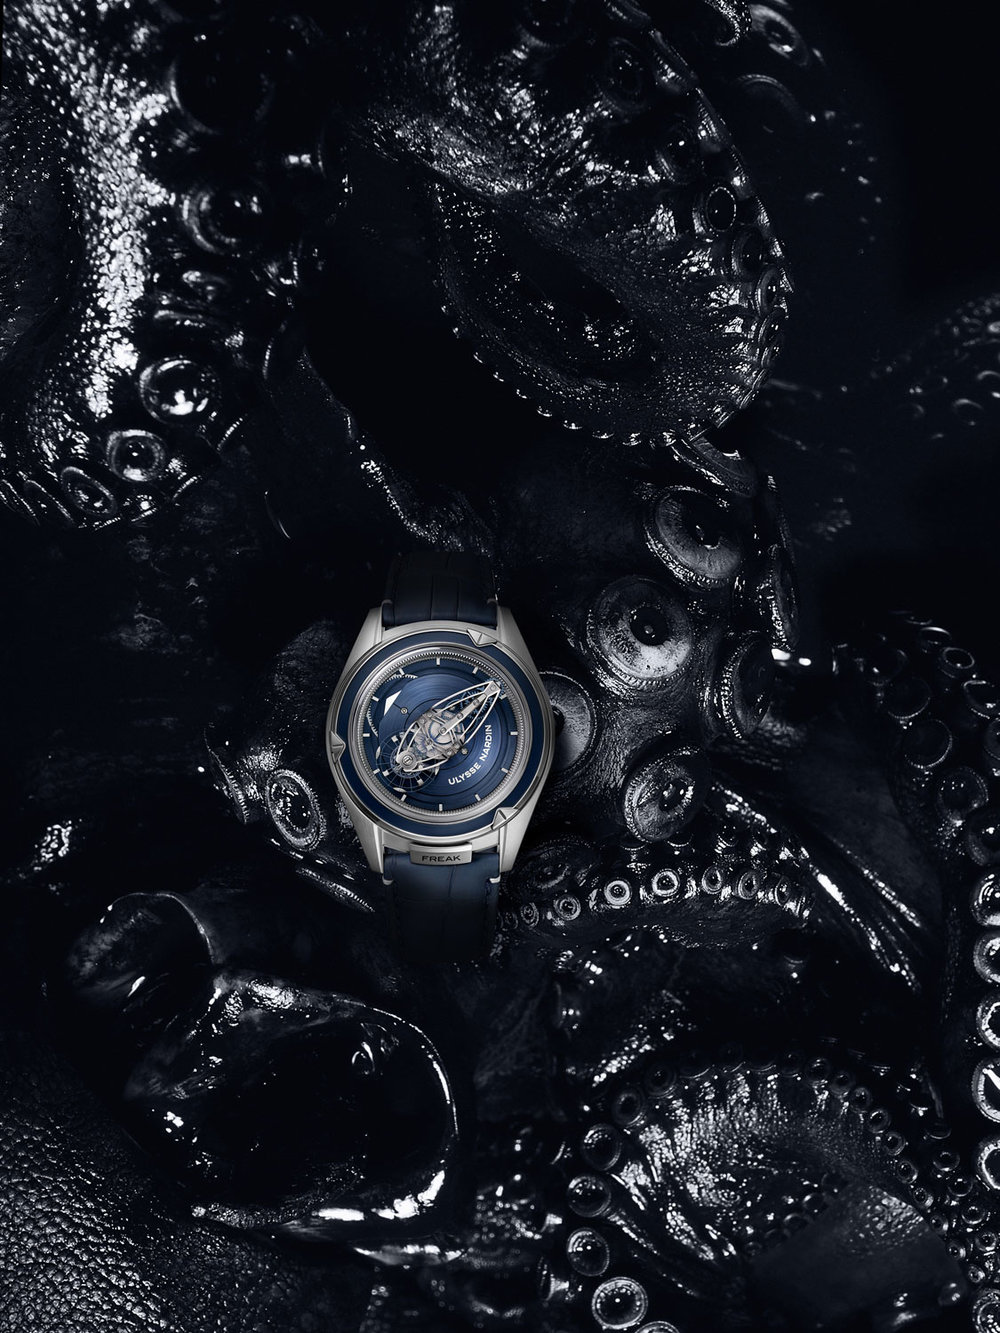 The_Ink_Collective_Creative_Content_Design_Agency_Paris_Sydney_Luxury_Editorial_Kering_Ulysse_Nardin_CEO_Patrick_Pruniaux_CEO_Interview_Luxury_Watches_Timepieces_Swiss_Manufacture_Freak_Out_13.jpg